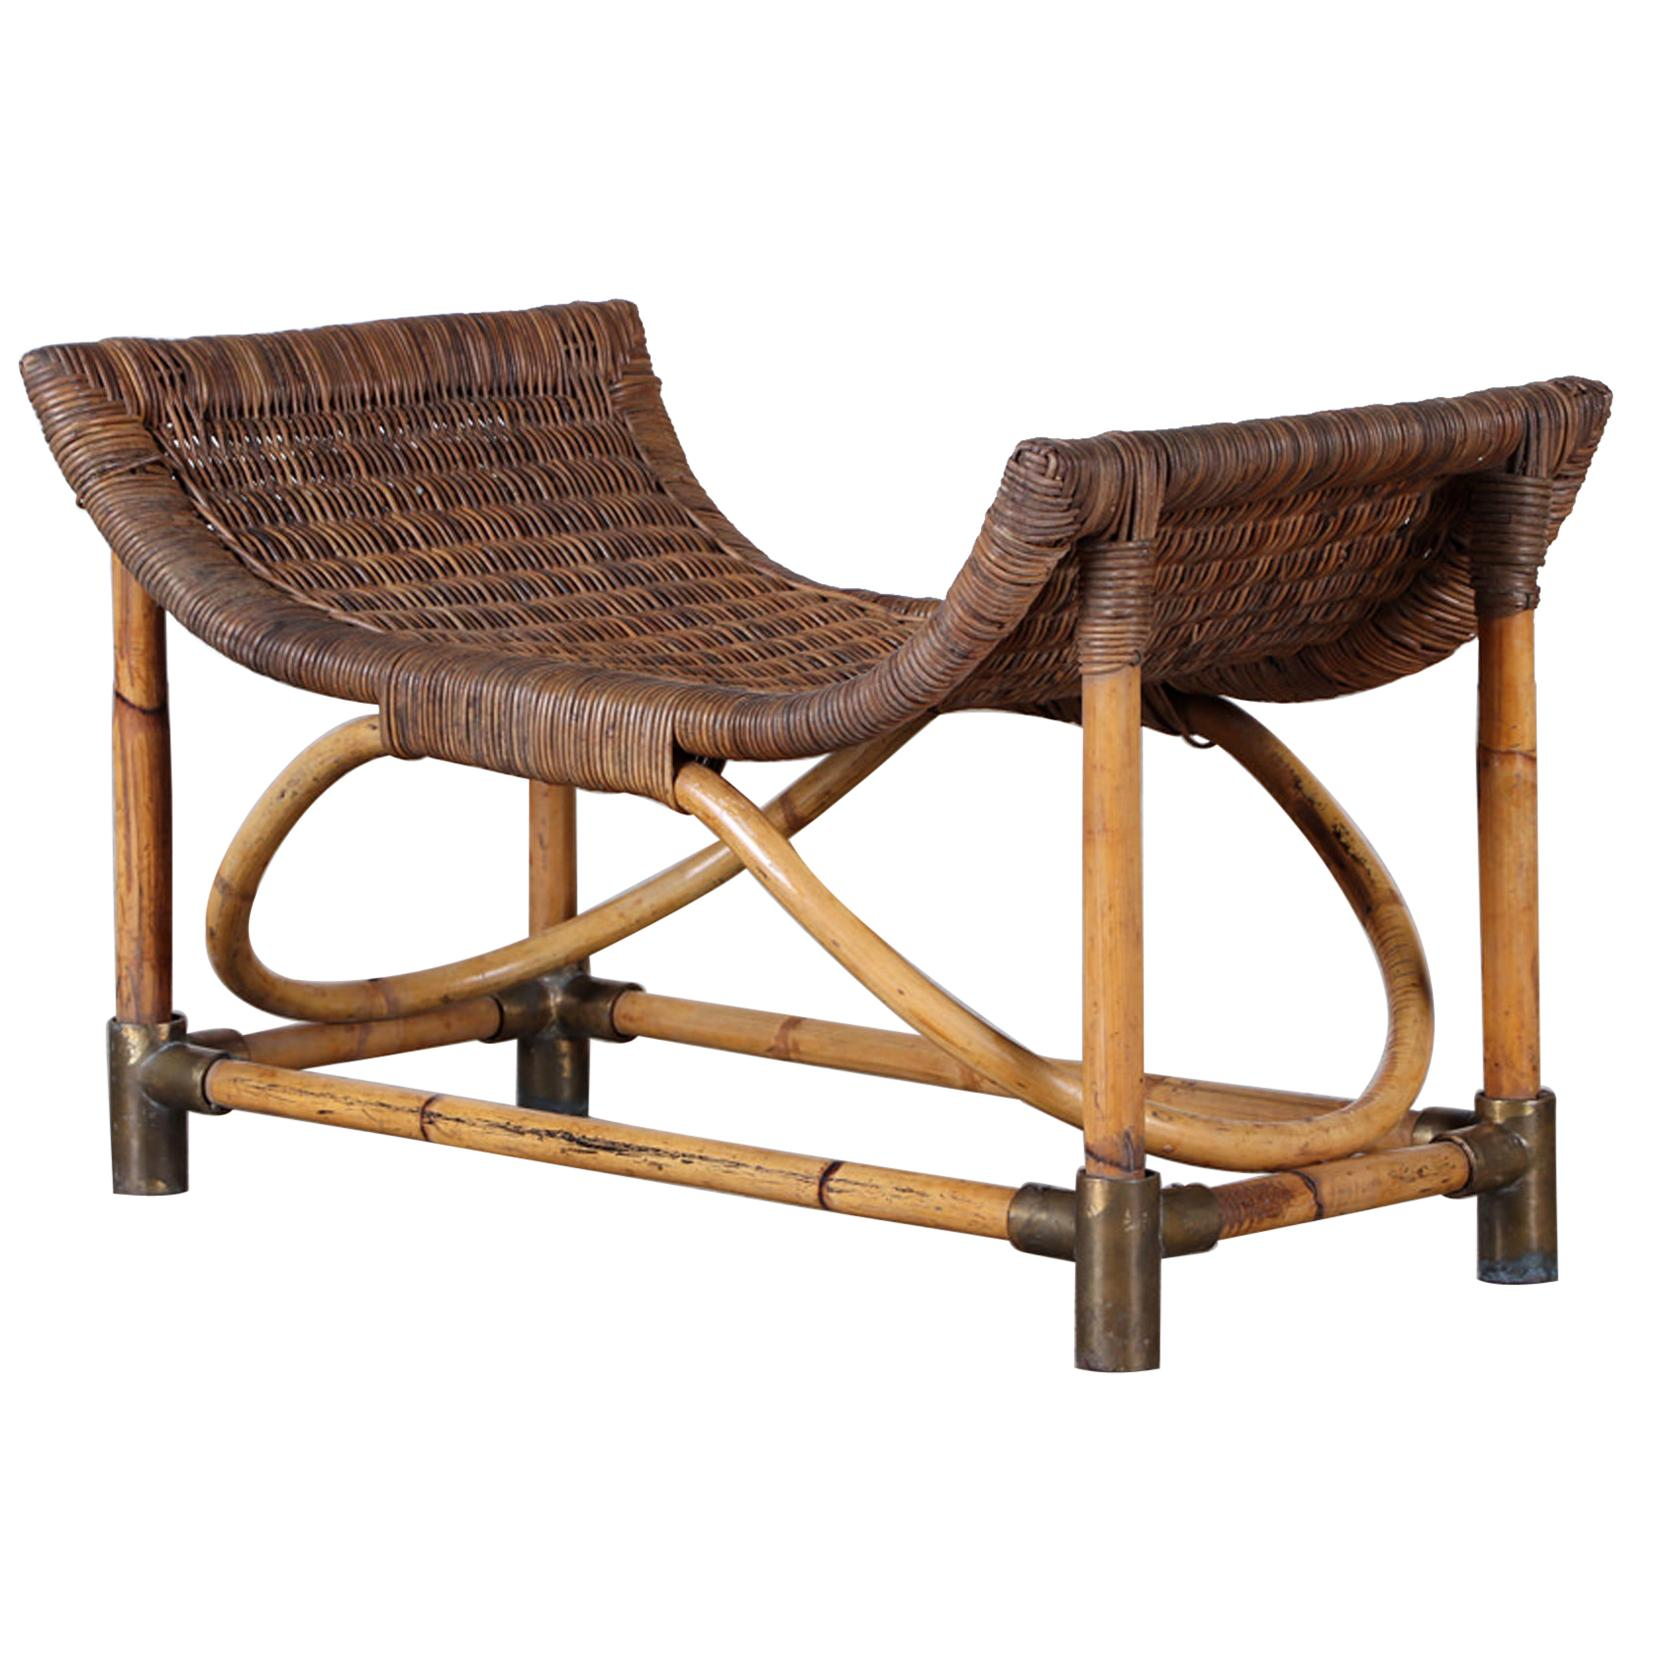 1950s Rattan and Bentwood Bench